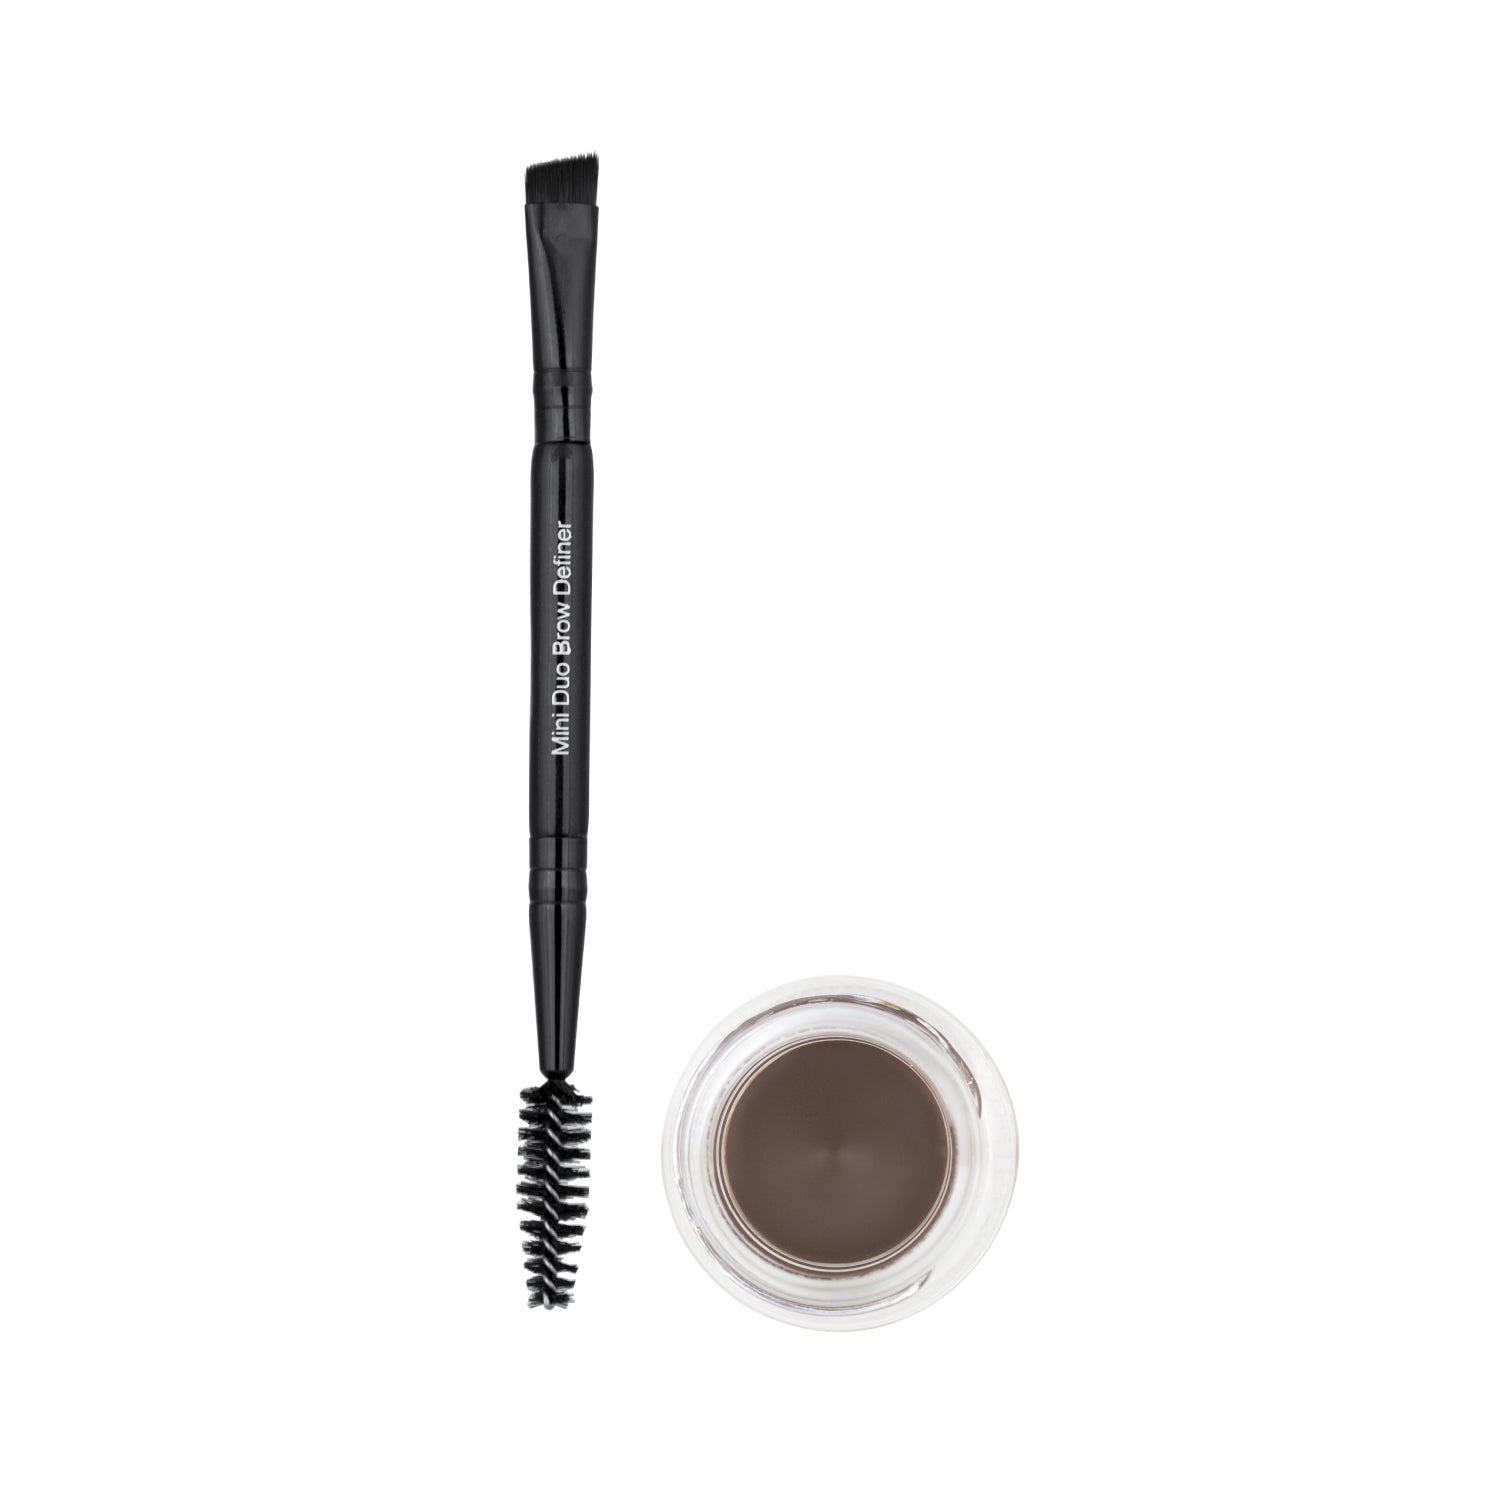 BILLION DOLLAR BROWS - Brow Butter Pomade Kit